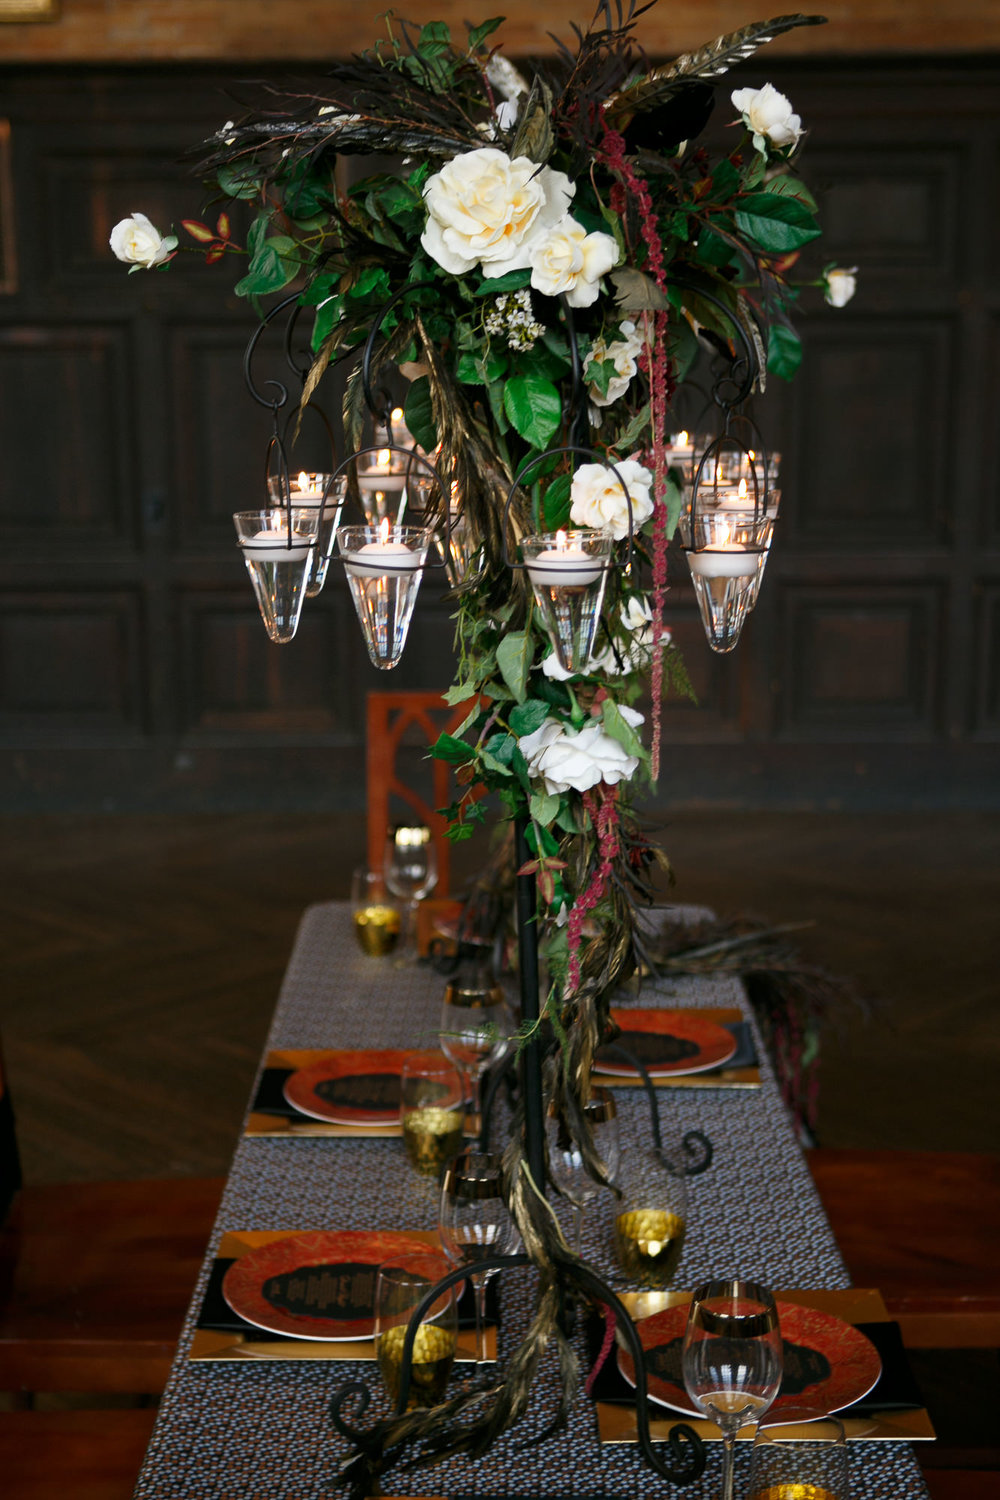 68 Tall Centerpiece Floating Candles White Rose Red Black Feather Black Red Gold Wedding.jpg